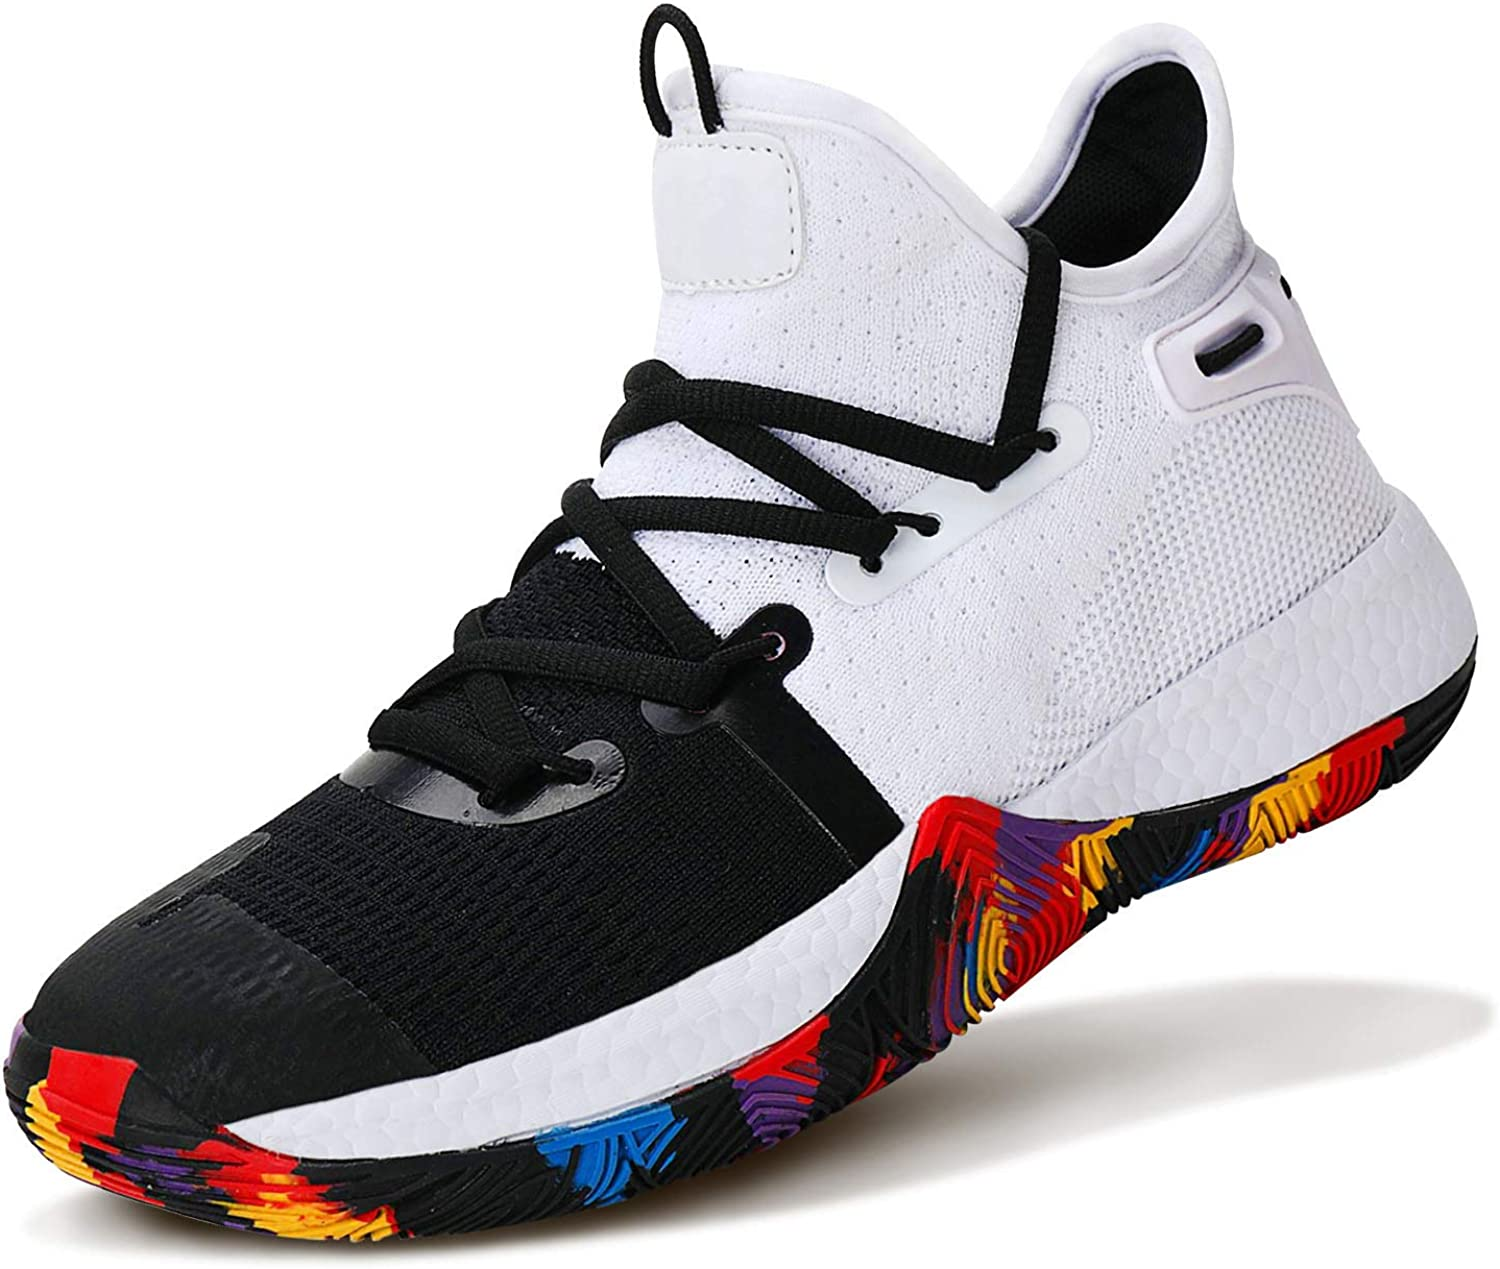 ASHION Kid's Basketball Wholesale Shoes Boys Deluxe Comfo Trainers Girls Sneakers